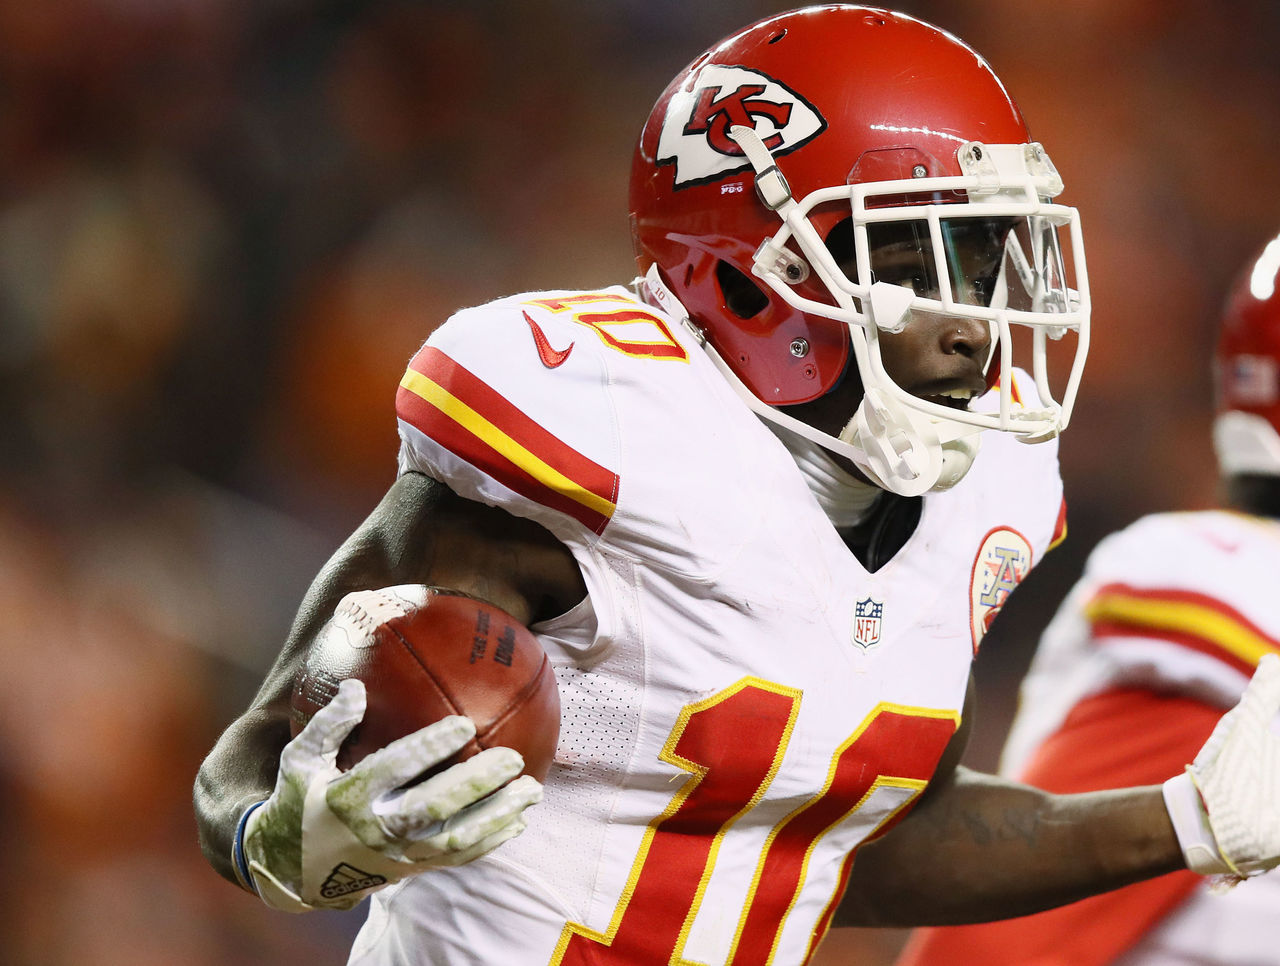 Watch Chiefs Hill Burns Chargers For 95 Yard Return TD